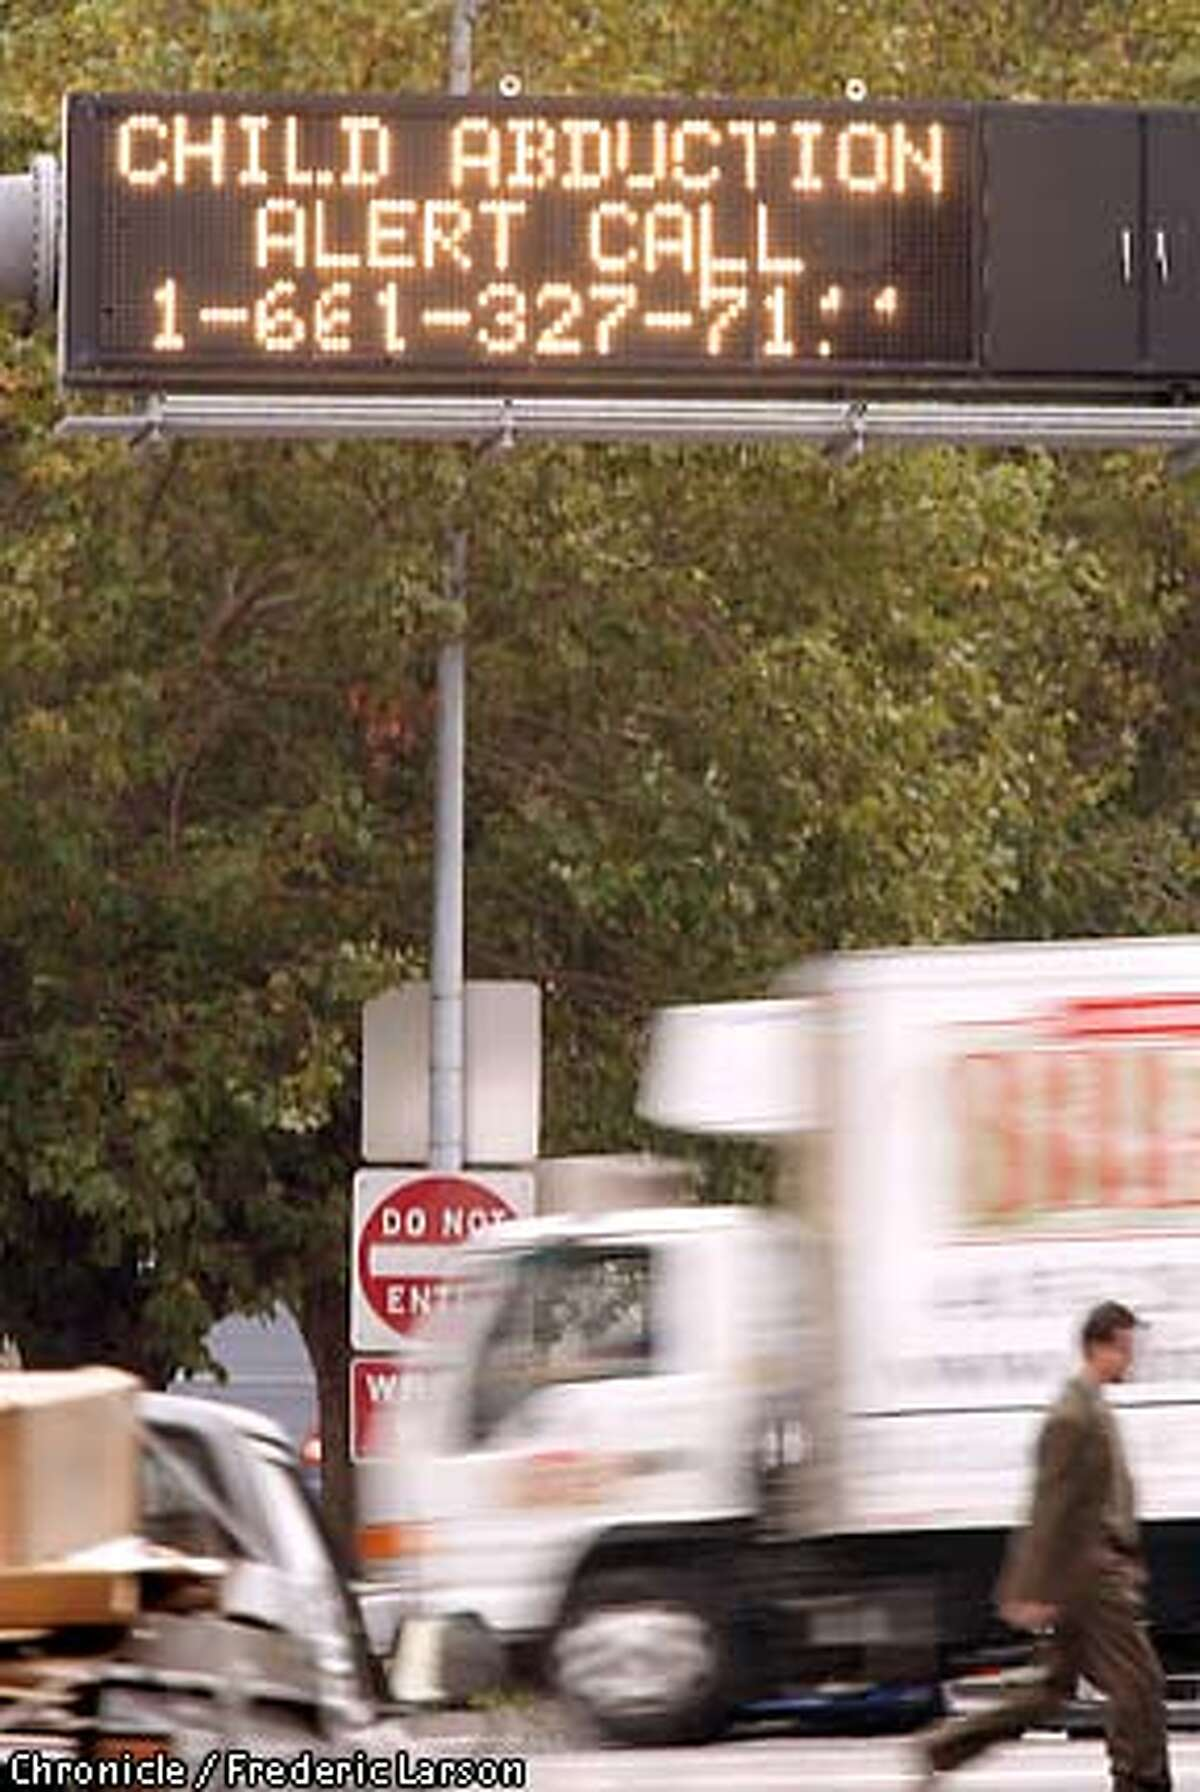 In this file photo, an Amber Alert sign is displayed at the entrance of Highway 280 at Sixth and Brannan Street in San Francisco. An Oakland woman triggered a fase Amber Alert on Thursday after accusing an acquaintance with stealing a baby.